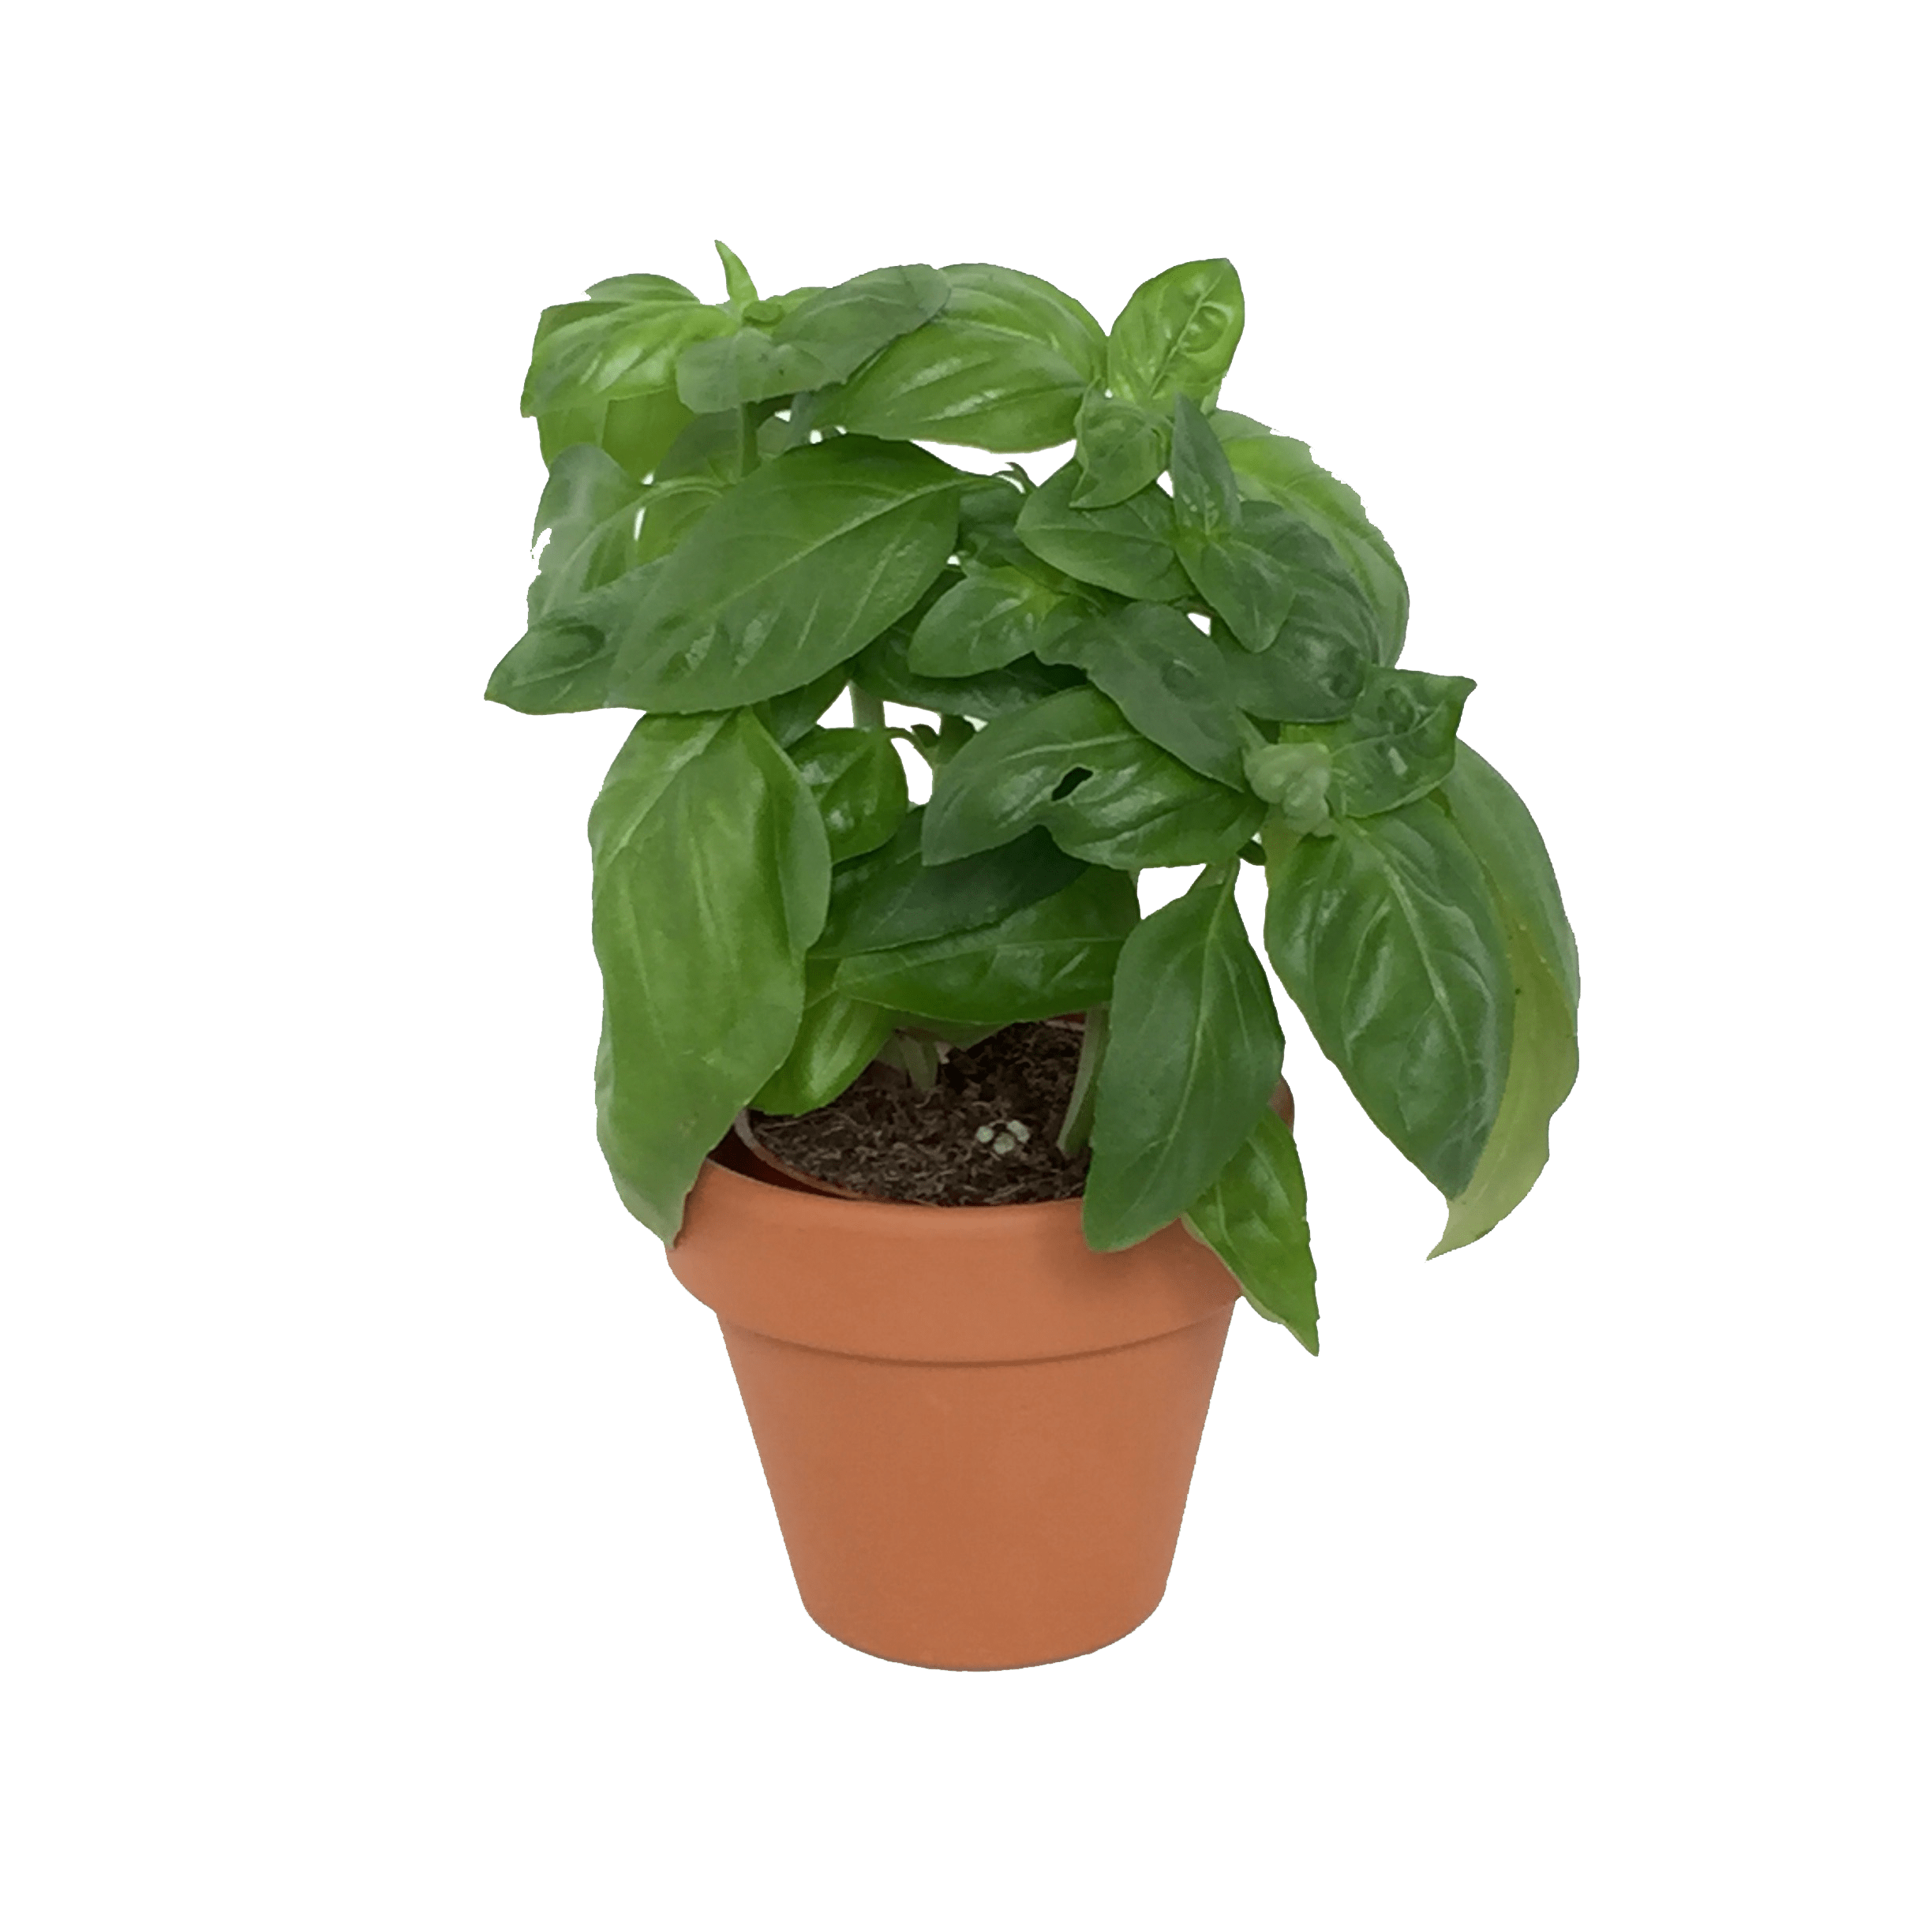 Basil plant png. Assorted mini herbs in